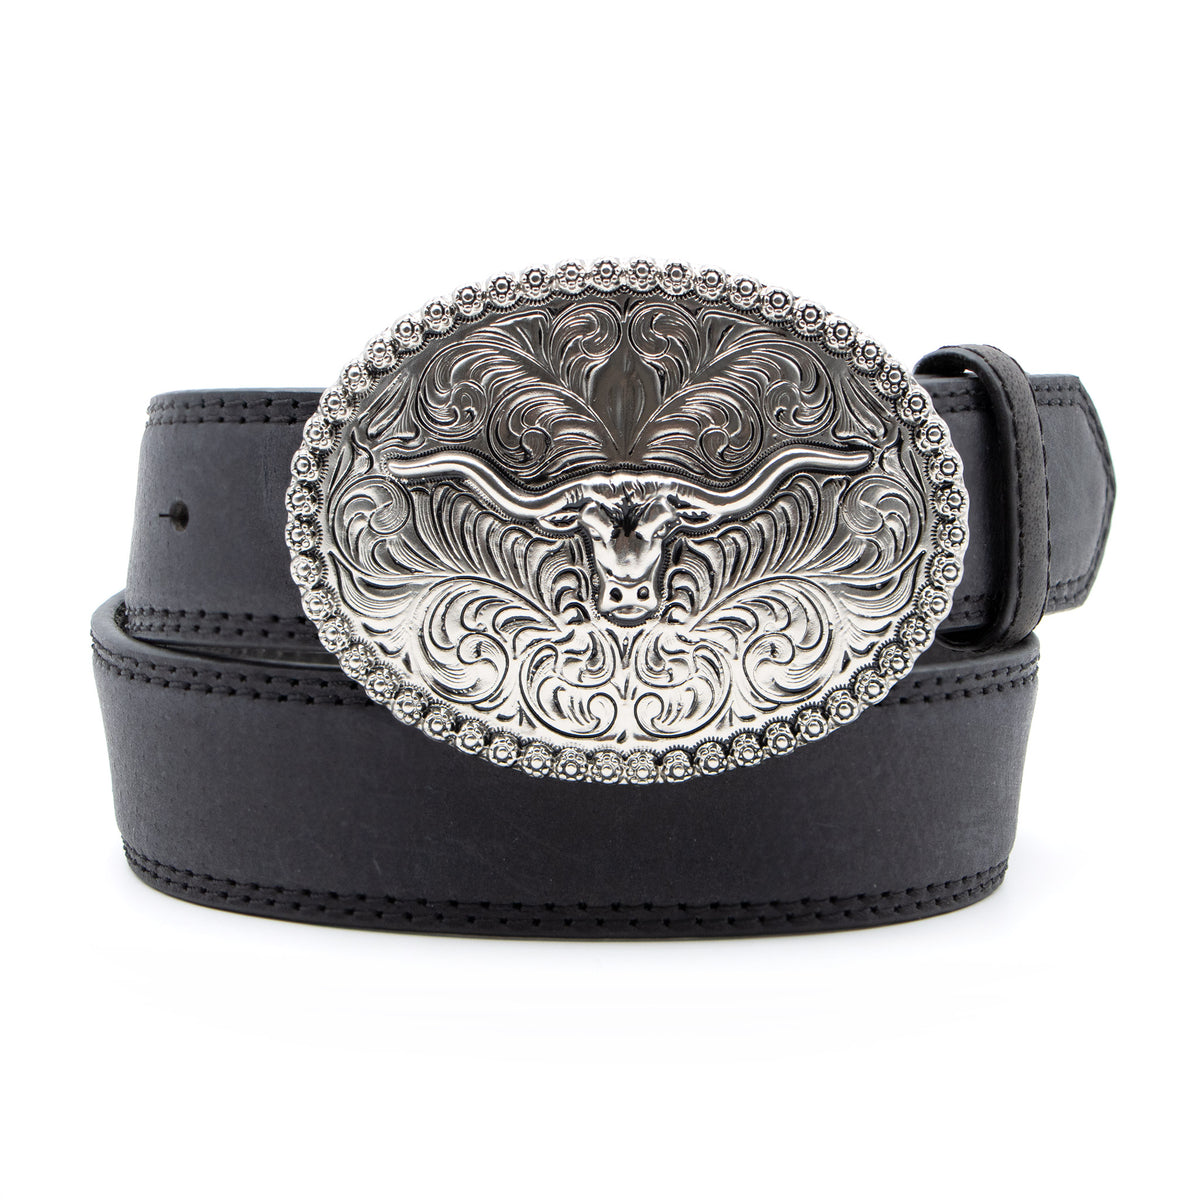 "Kids' 1 1/4"" Scrolled Longhorn Buckle Belt"